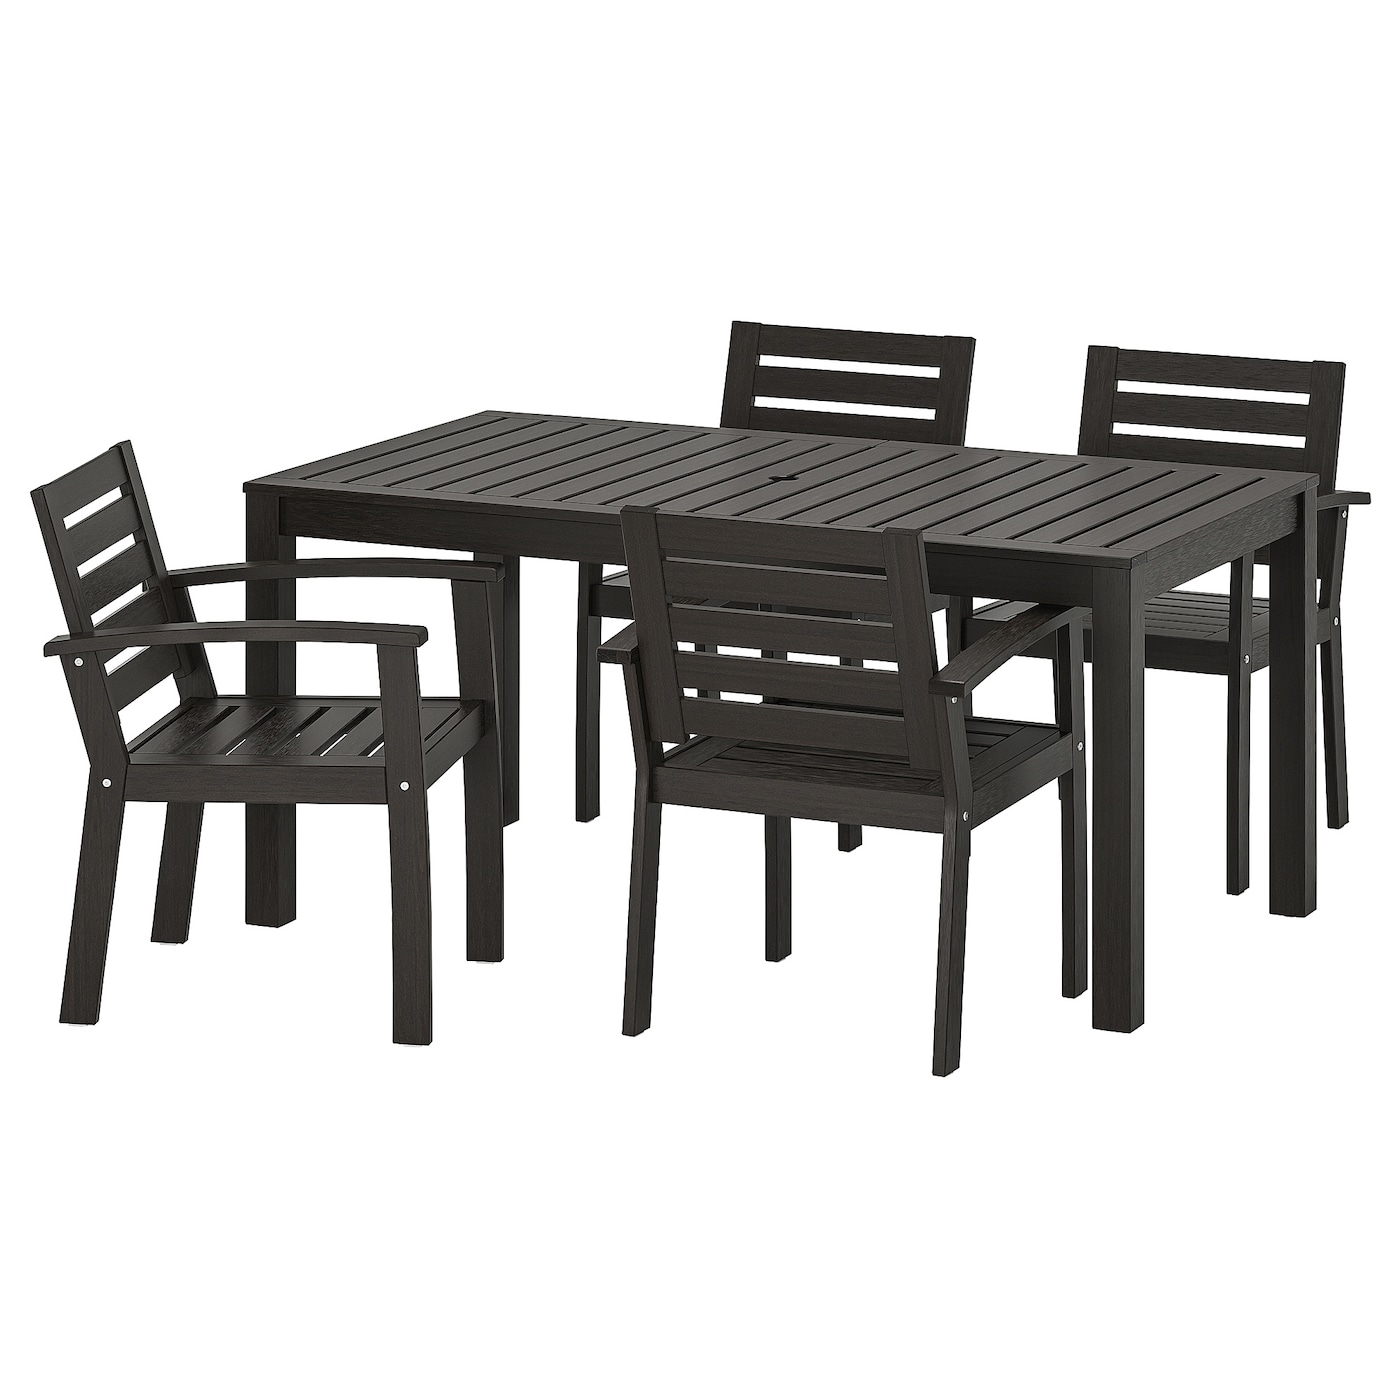 IKEA KLÖVEN table+4 chairs w armrests, outdoor